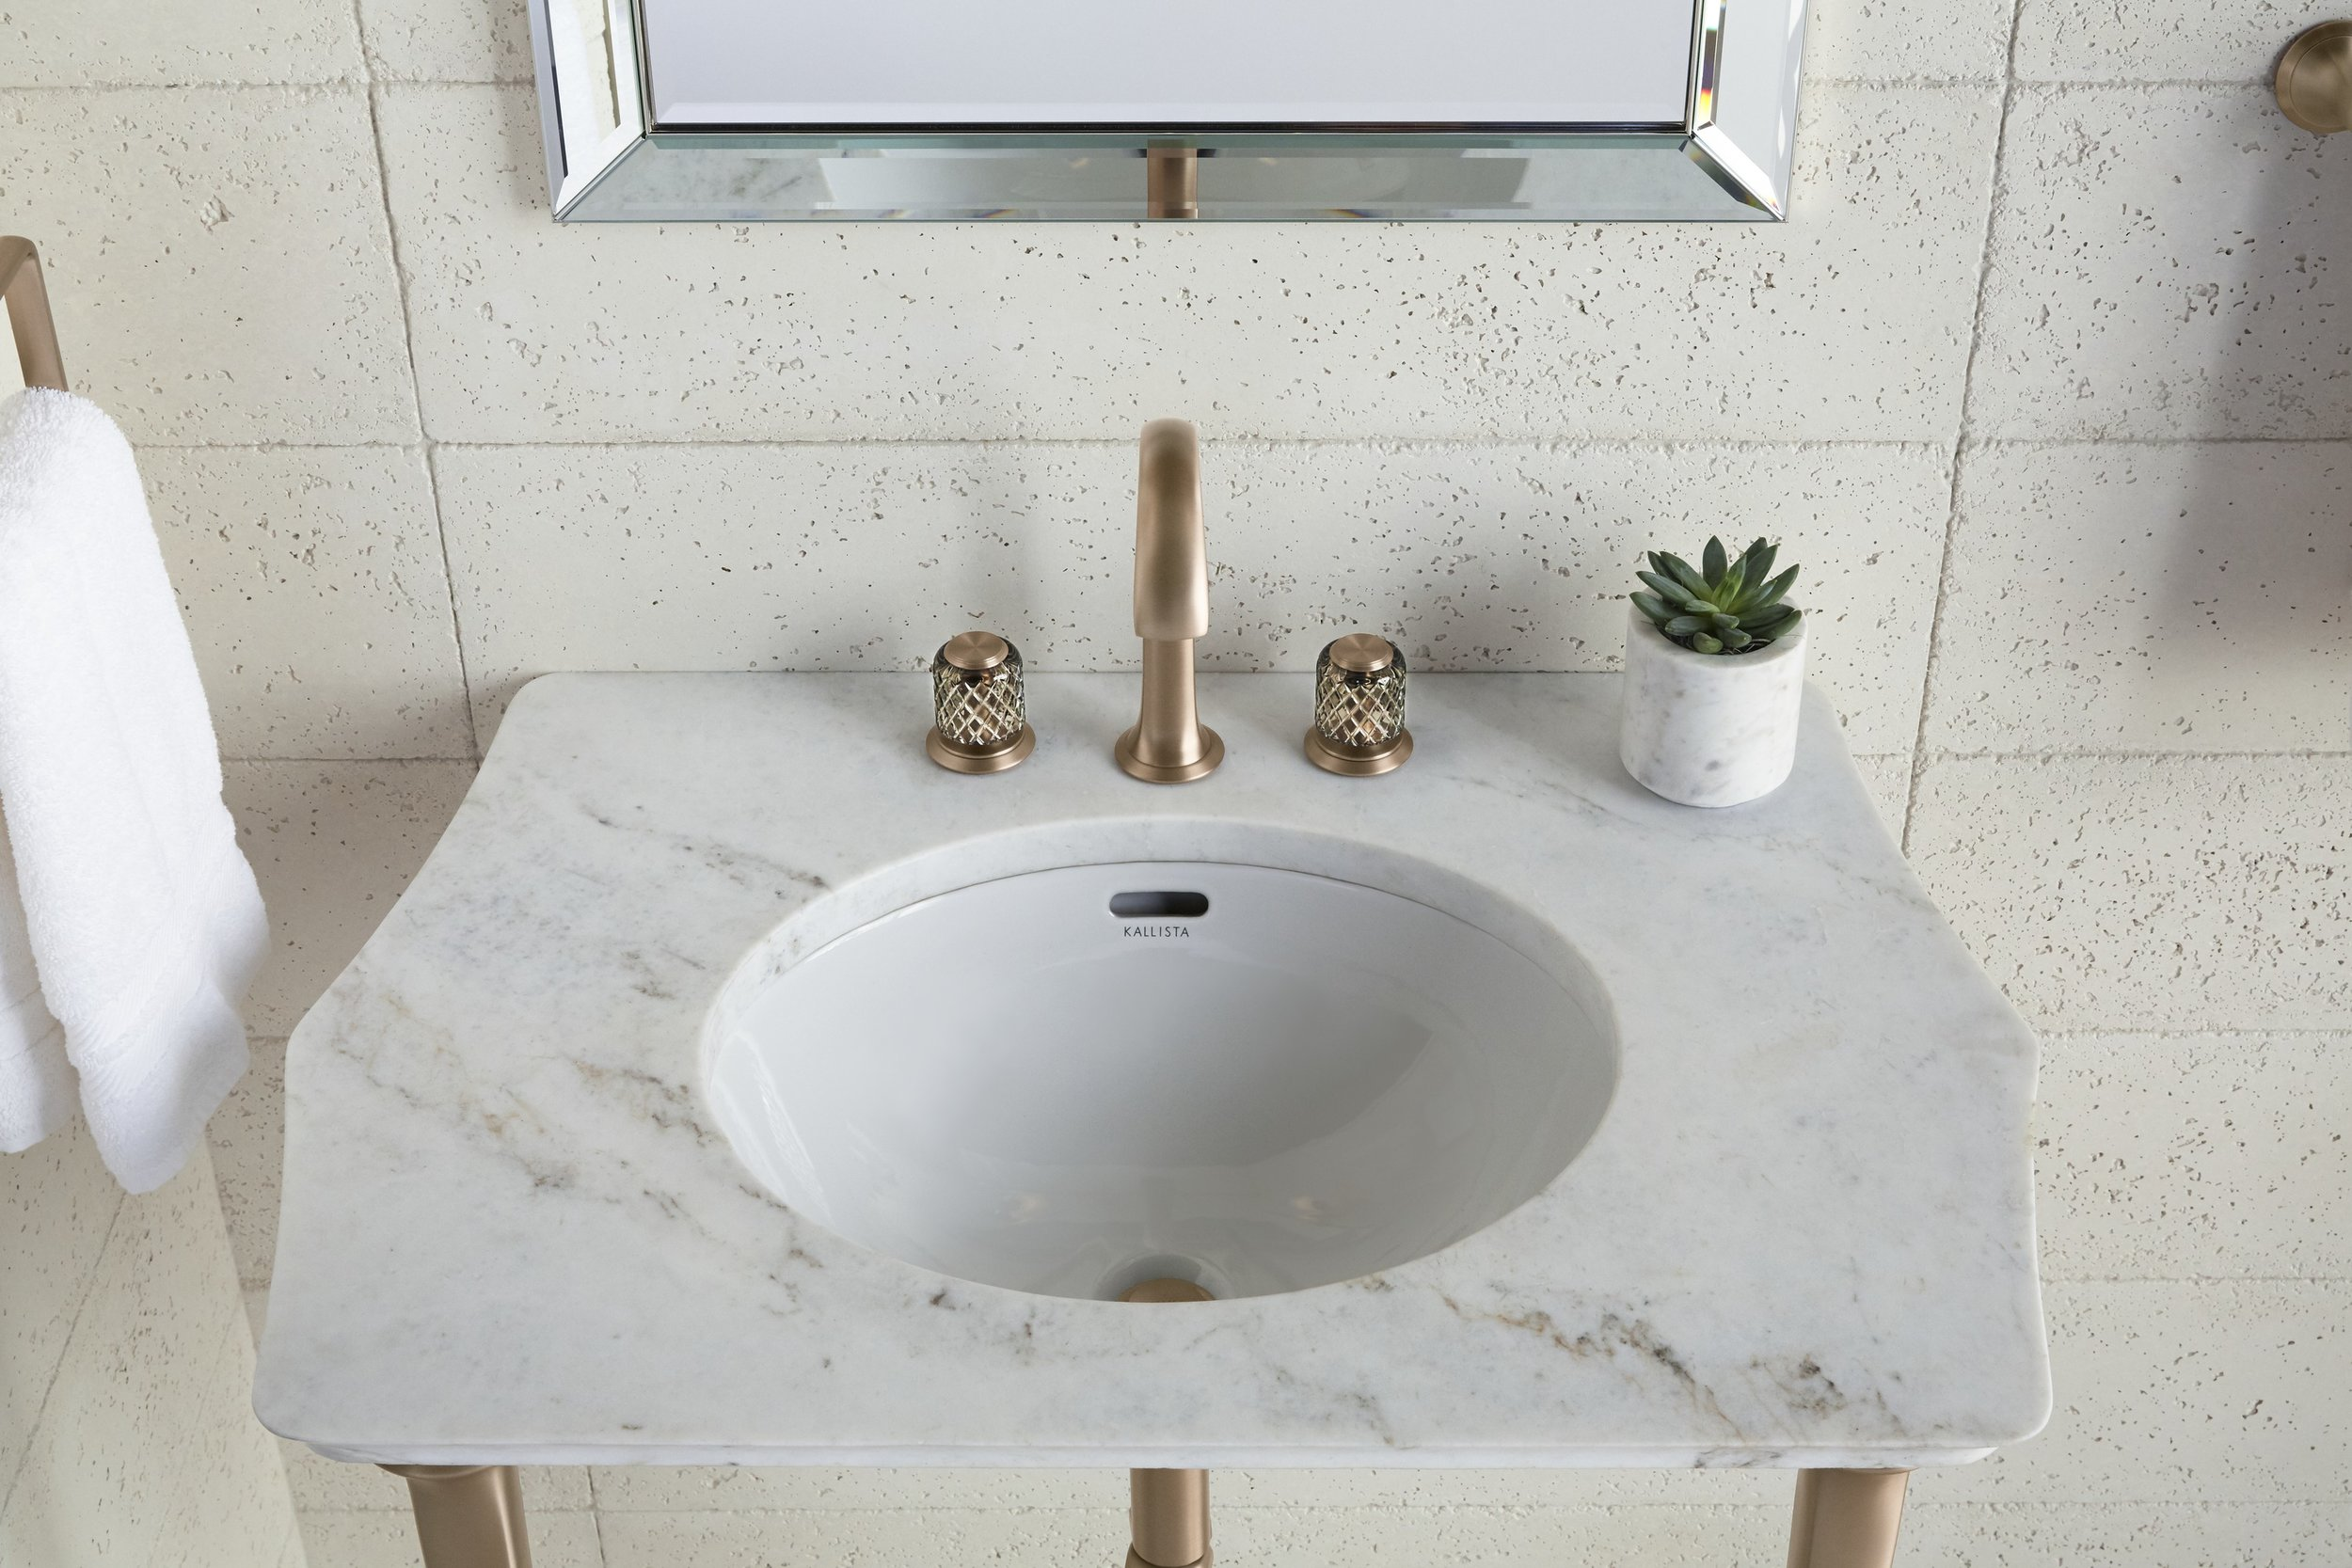 Script arch spout faucet in blush bronze (new finish) with St. Louis crystal knobs and Script console.jpg